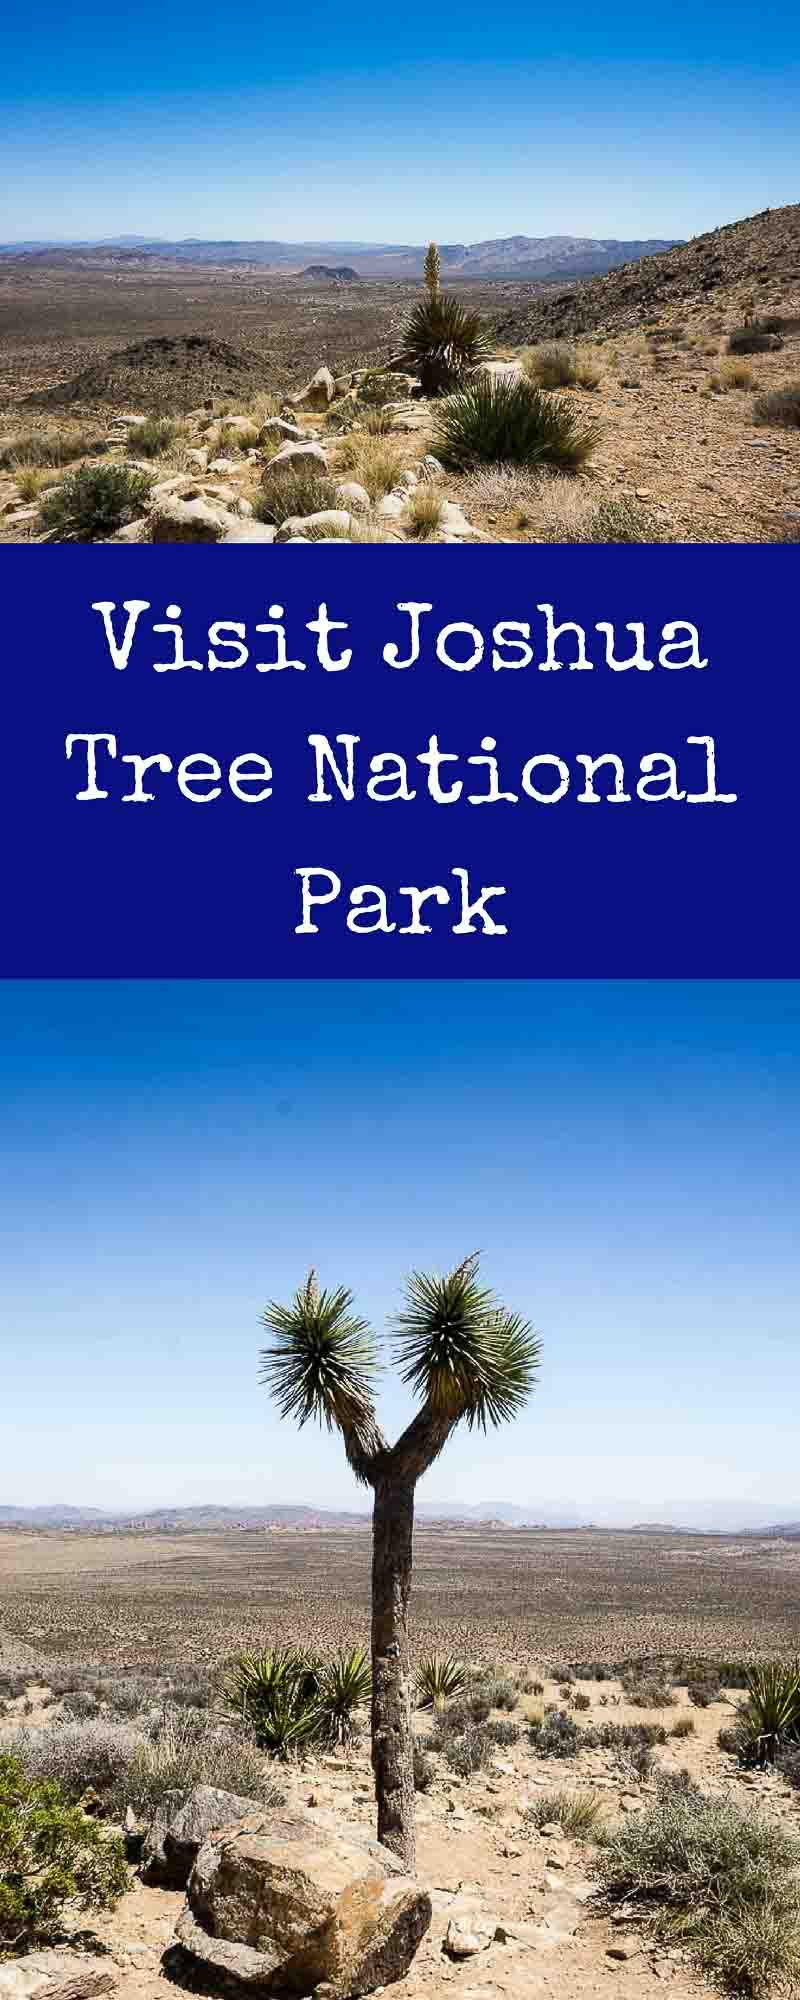 The closest National Park to San Diego and Los Angeles, Joshua Tree National Park is an oasis located in the beautiful high desert area of California. joshua tree travel guide | national parks | desert parks | chollas cactus | joshua trees | most popular national parks | things to do in joshua tree | ryan mountain | hiking in joshua tree | rock climbing in joshua tree